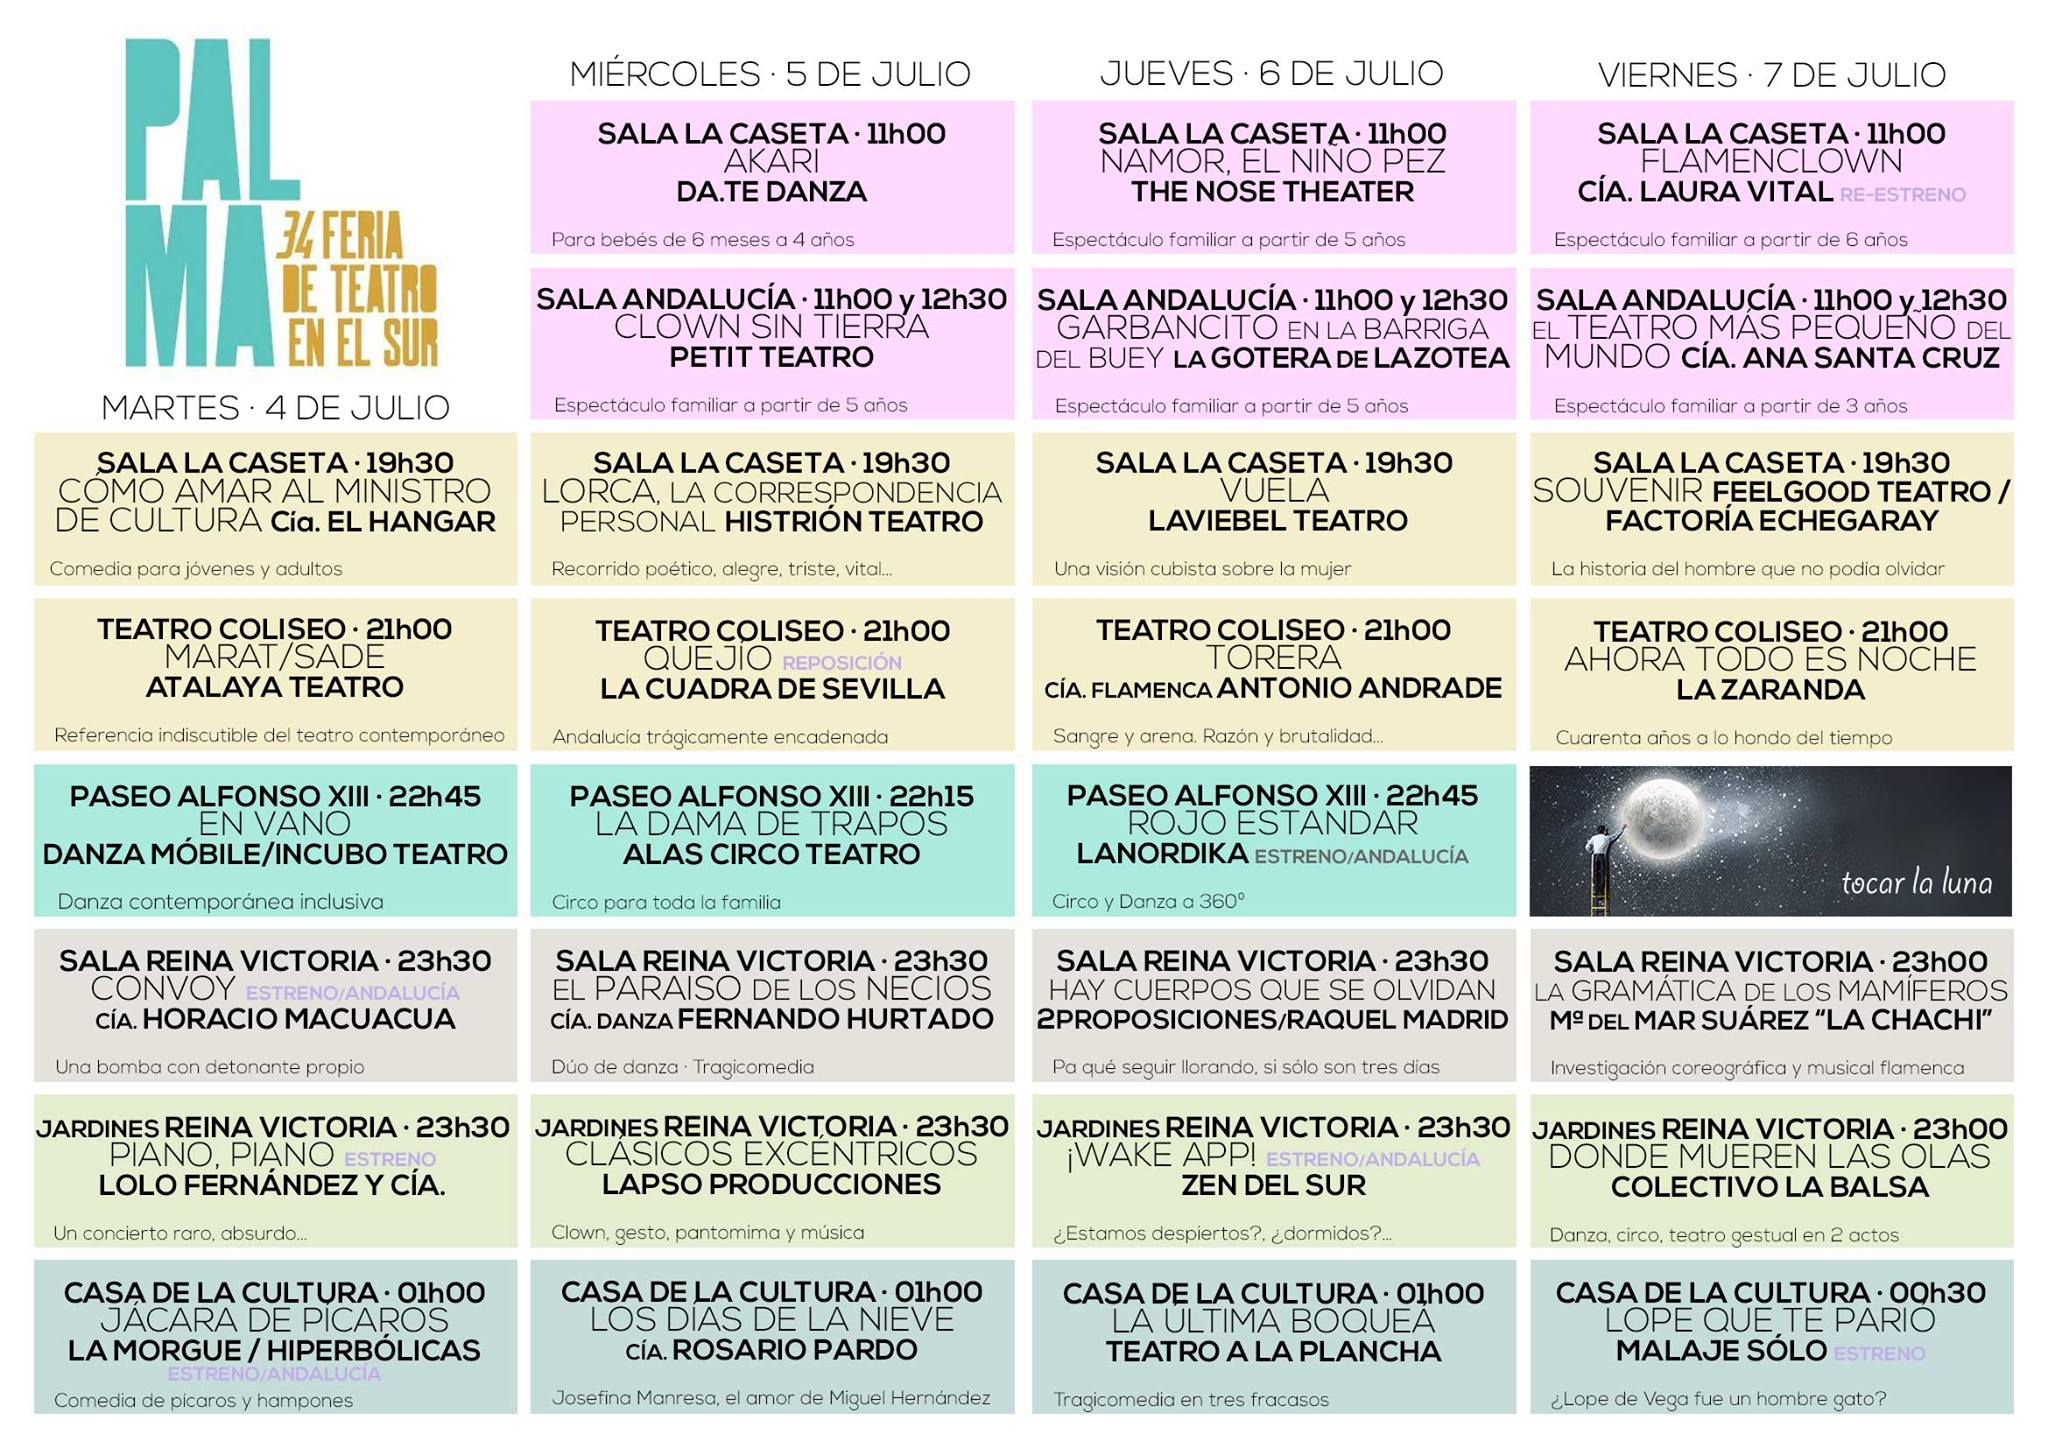 https://www.palmadelrio.es/sites/default/files/1.programa_feria_teatro_2017.jpg